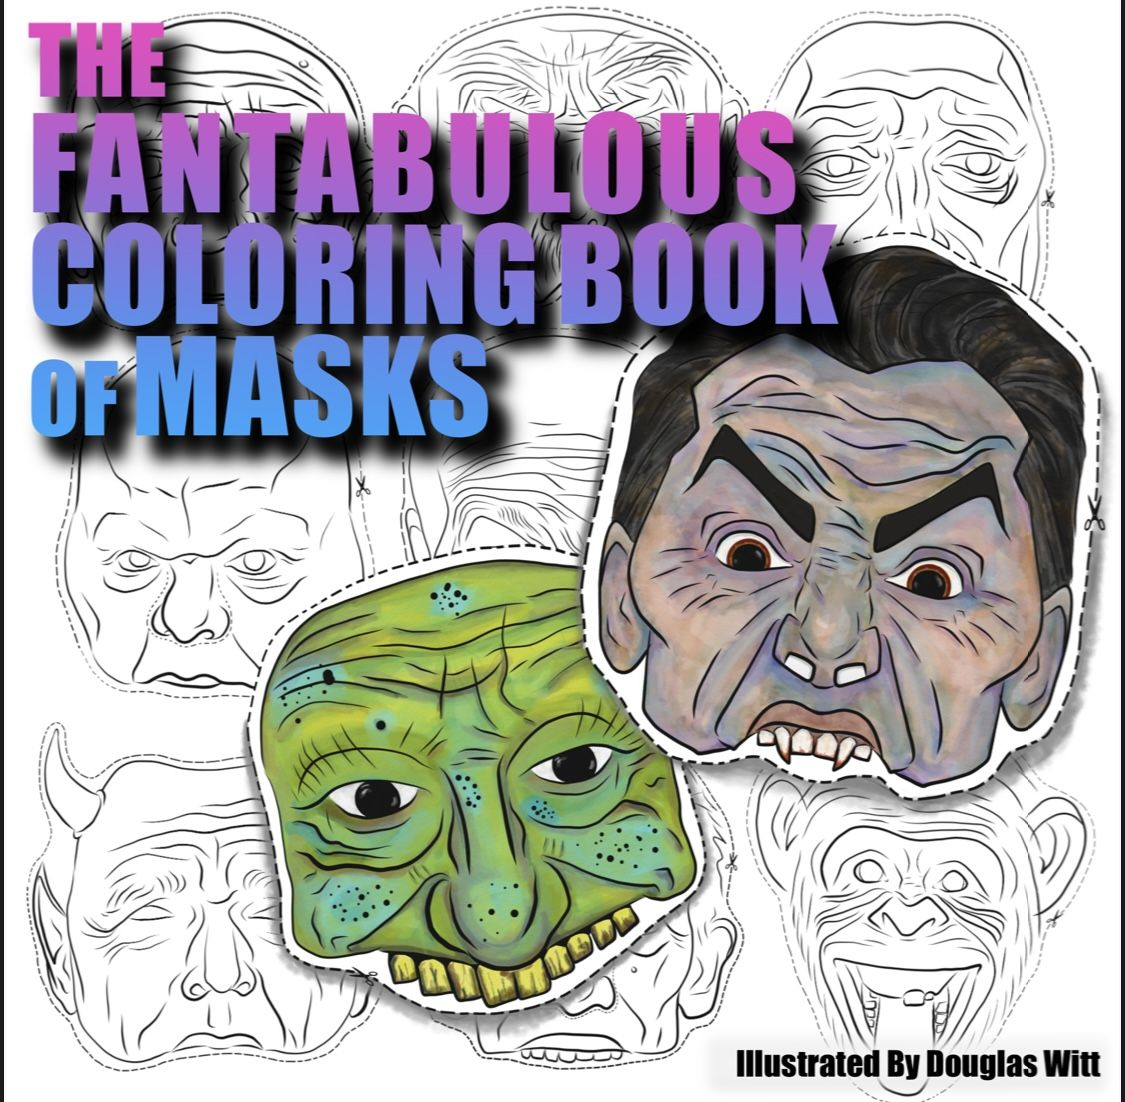 The Fantabulous Coloring Book Of Masks In 2020 Coloring Books Fantabulous Books